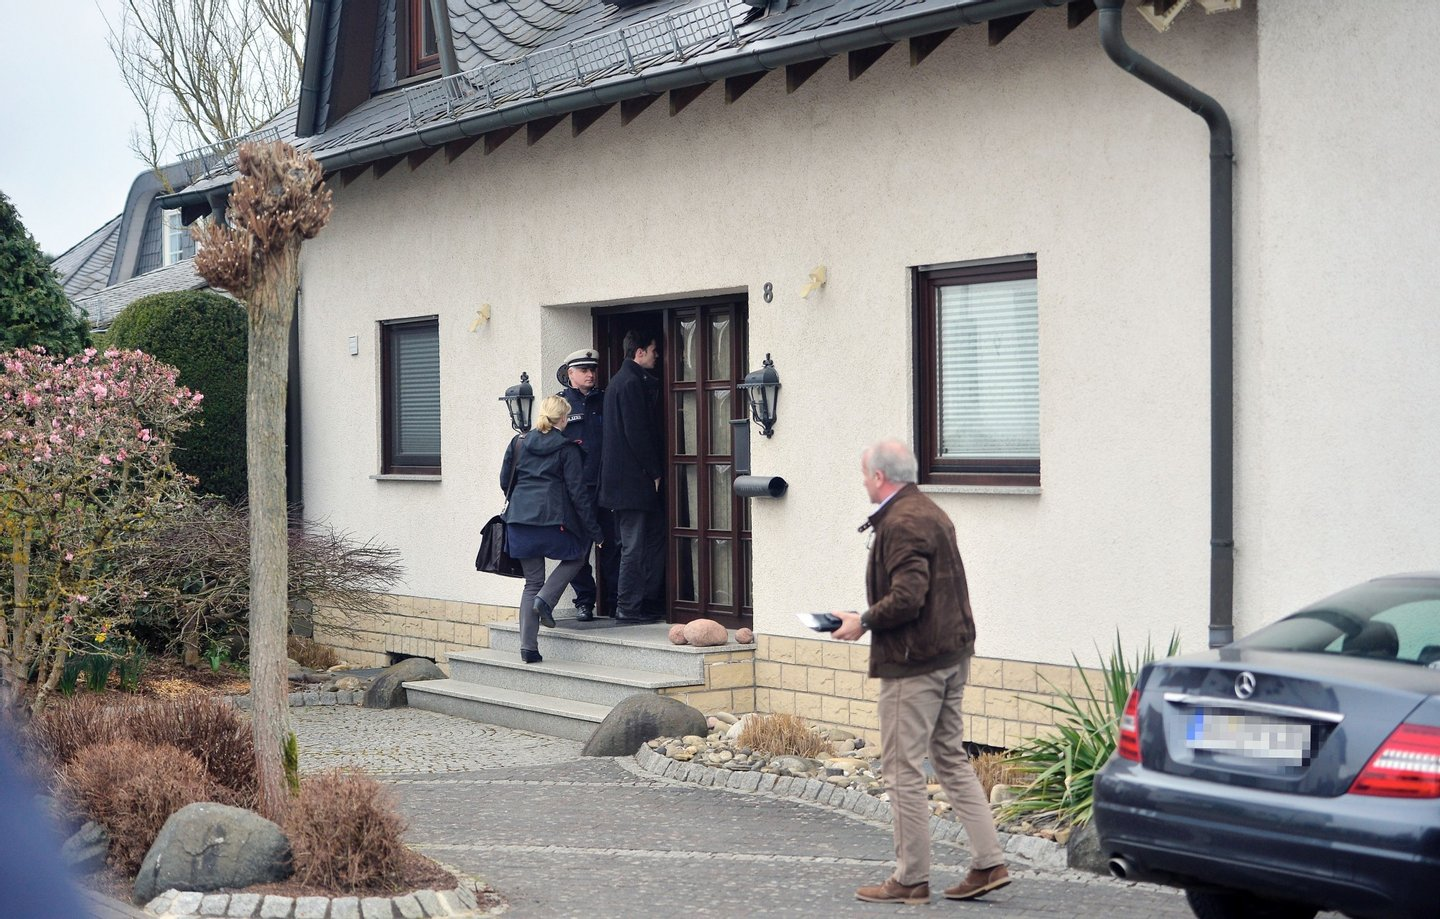 MONTABAUR, GERMANY - MARCH 26:  Police stand in front of the residence of the parents of Andreas Lubitz, co-pilot on Germanwings flight 4U9525, on March 26, 2015 in Montabaur, Germany. French authorities confirmed that Lubitz was alone in the cockpit during the rapid descent of flight 4U9525 until it crashed into mountains in southern France two days ago, killing all 150 people on board. Authorities are pursuing the possibility that Lubitz might have acted deliberately in steering the aircraft to its destruction.  (Photo by Thomas Lohnes/Getty Images)